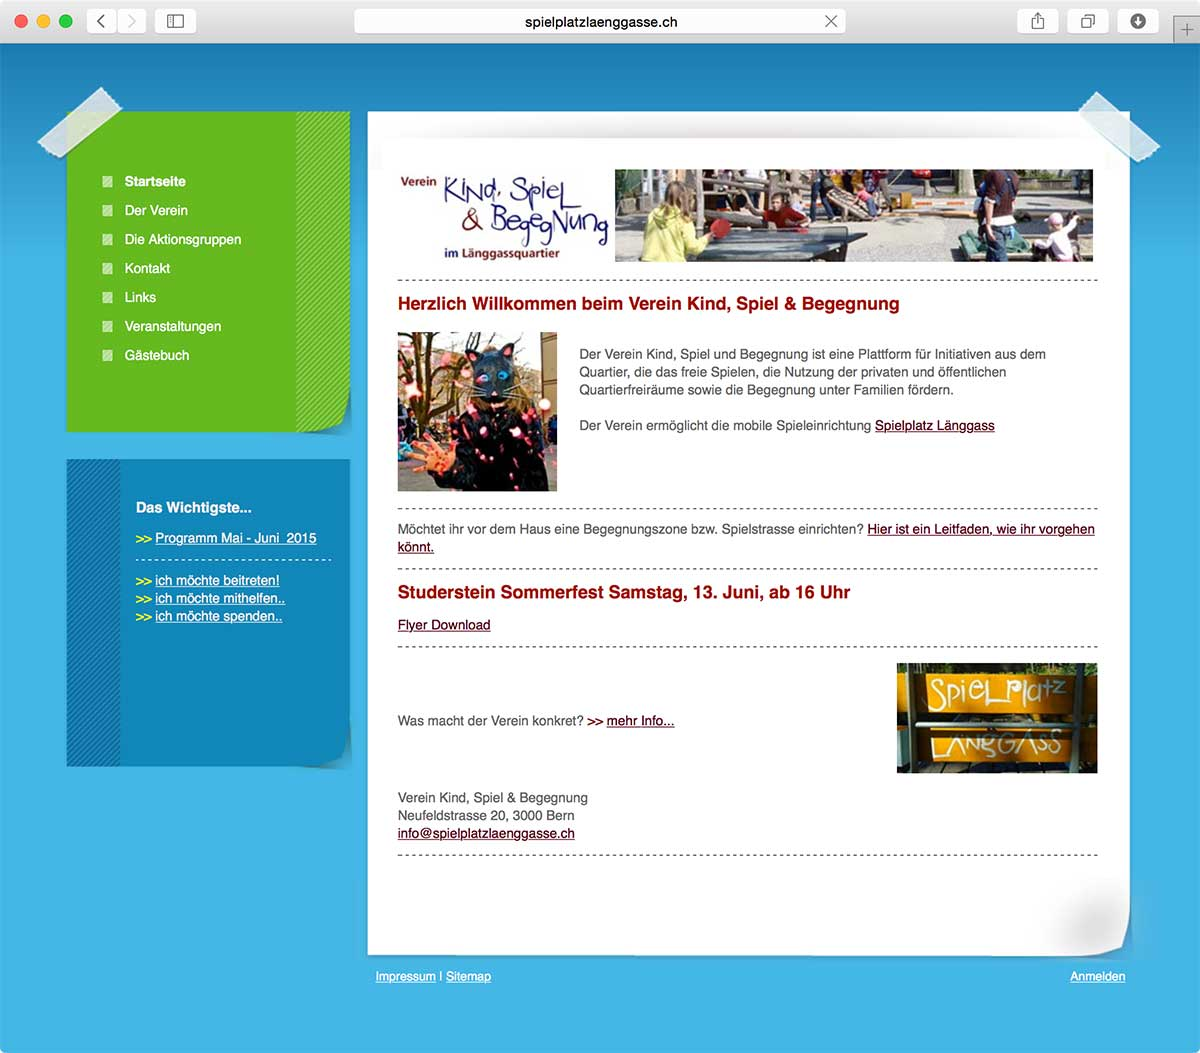 website laenggasse